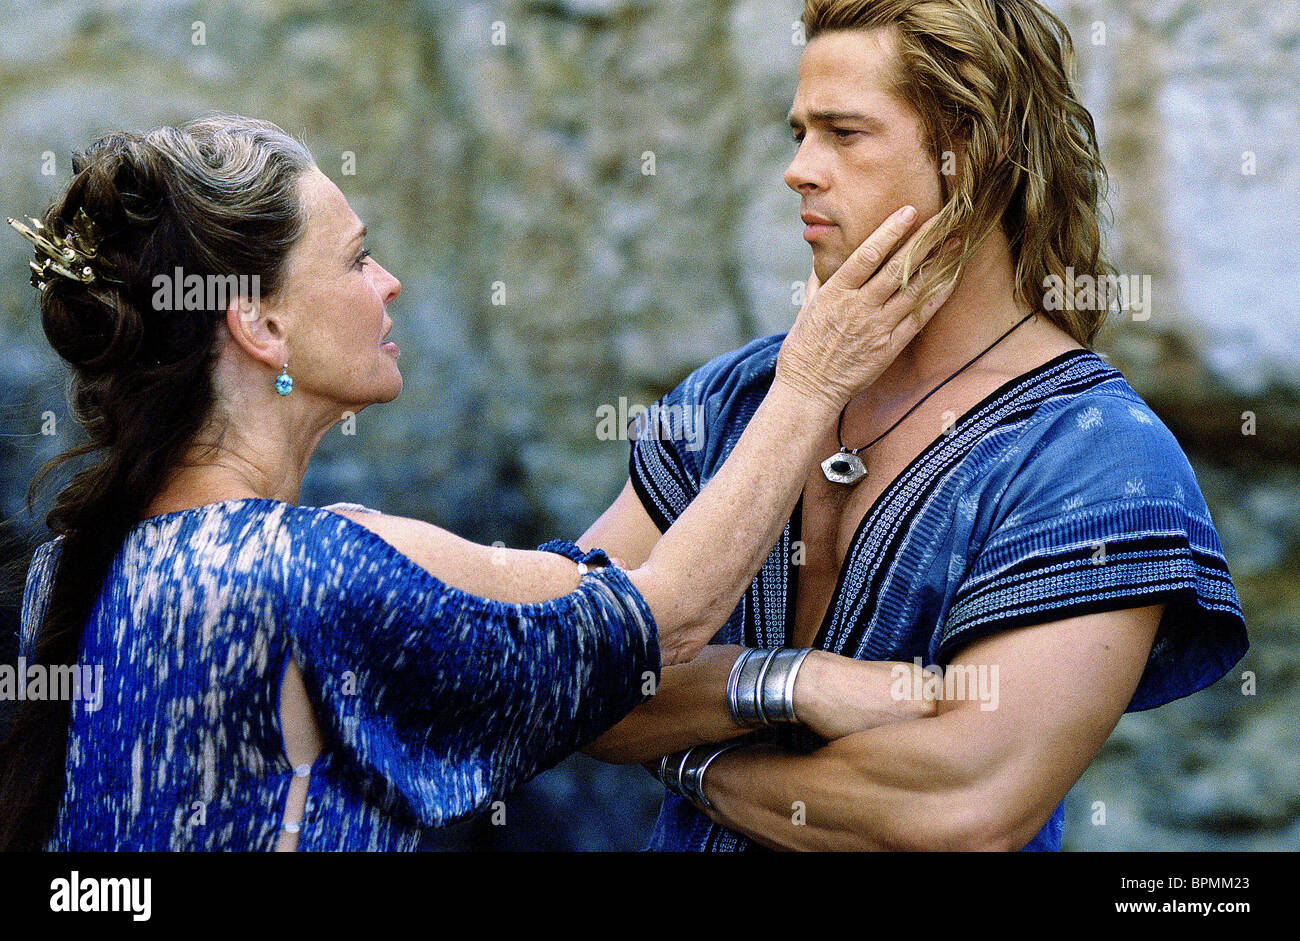 JULIE CHRISTIE & BRAD PITT TROY (2004) - Stock Image